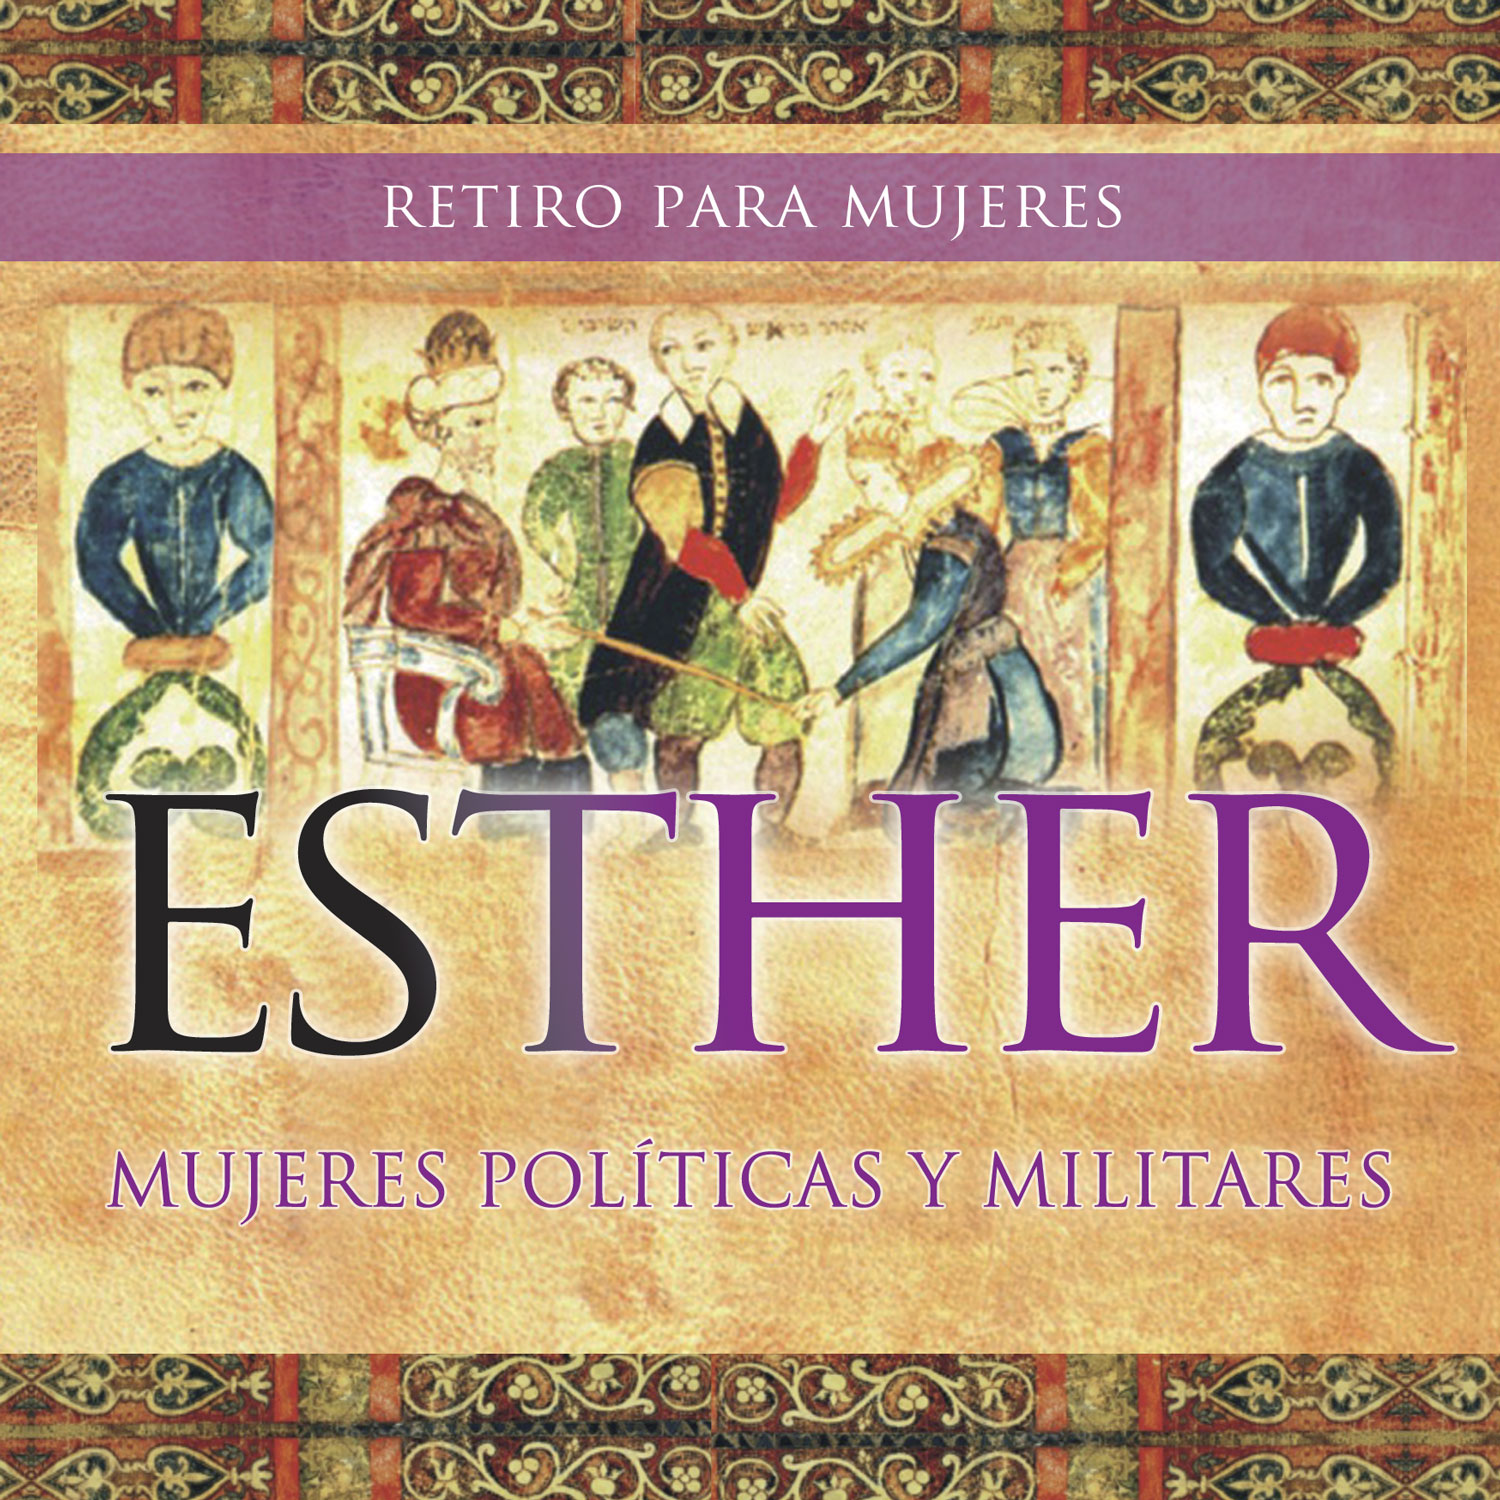 Retiro Esther mayo 2018